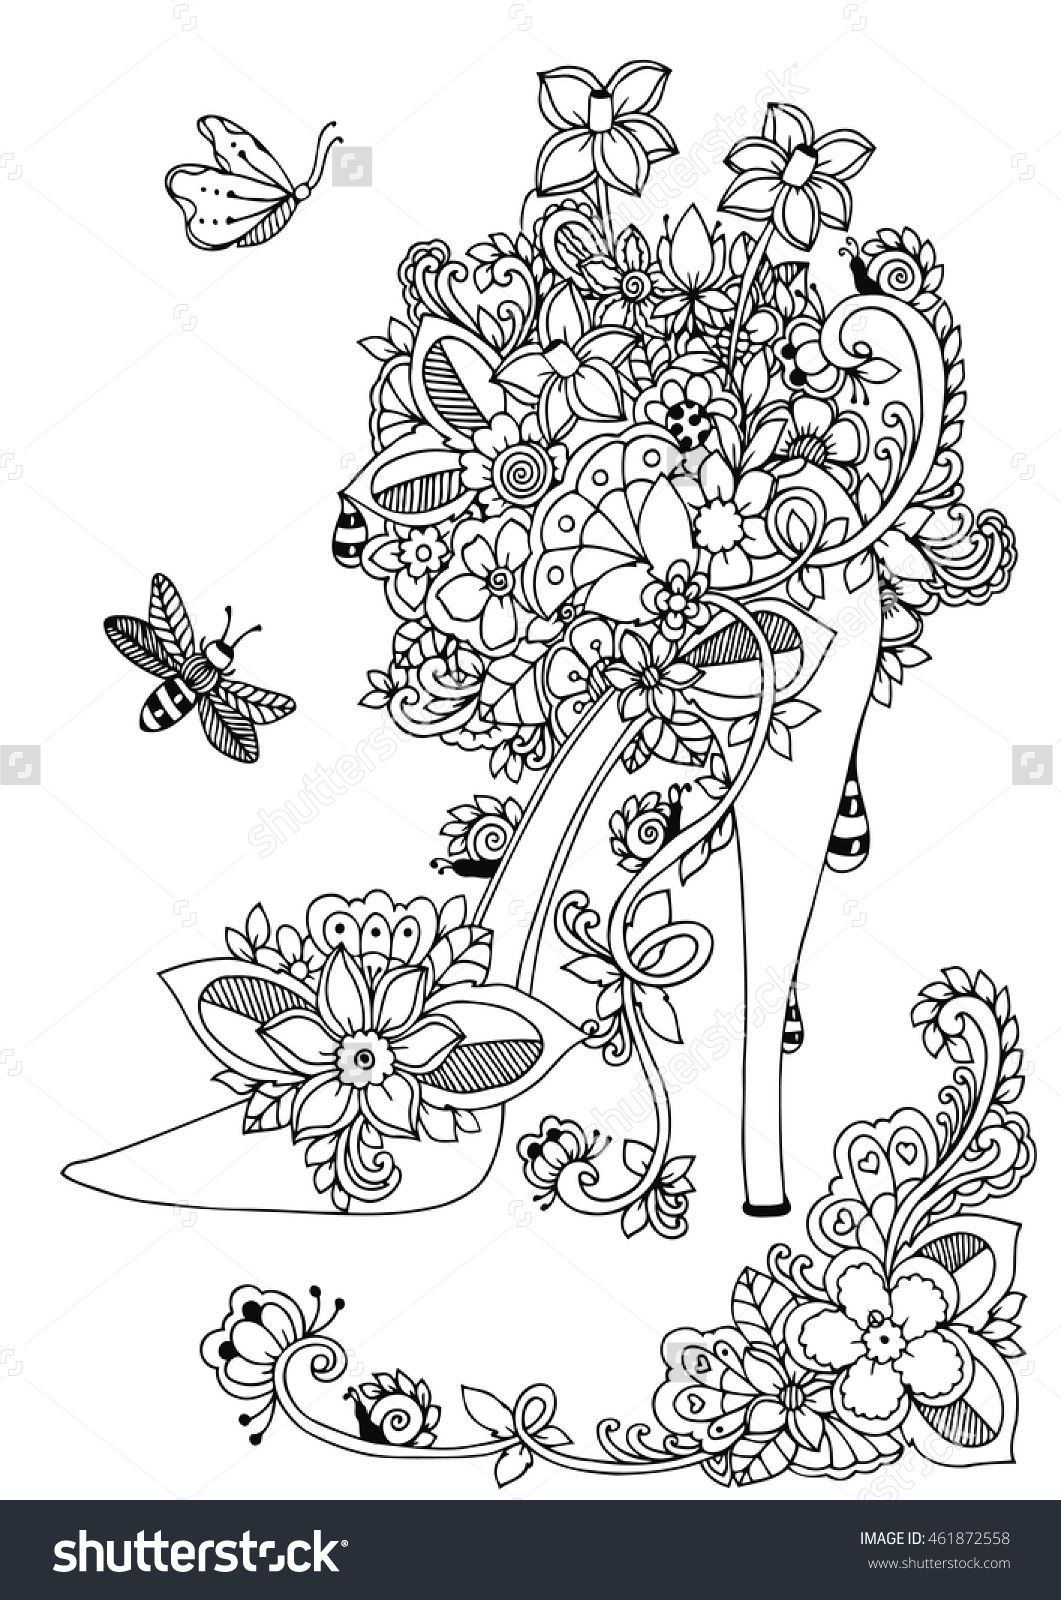 Anti stress colouring doodle and dream - Zentangle Women High Heel Shoe With Flowers Doodle Drawing Coloring Book Anti Stress 461872558